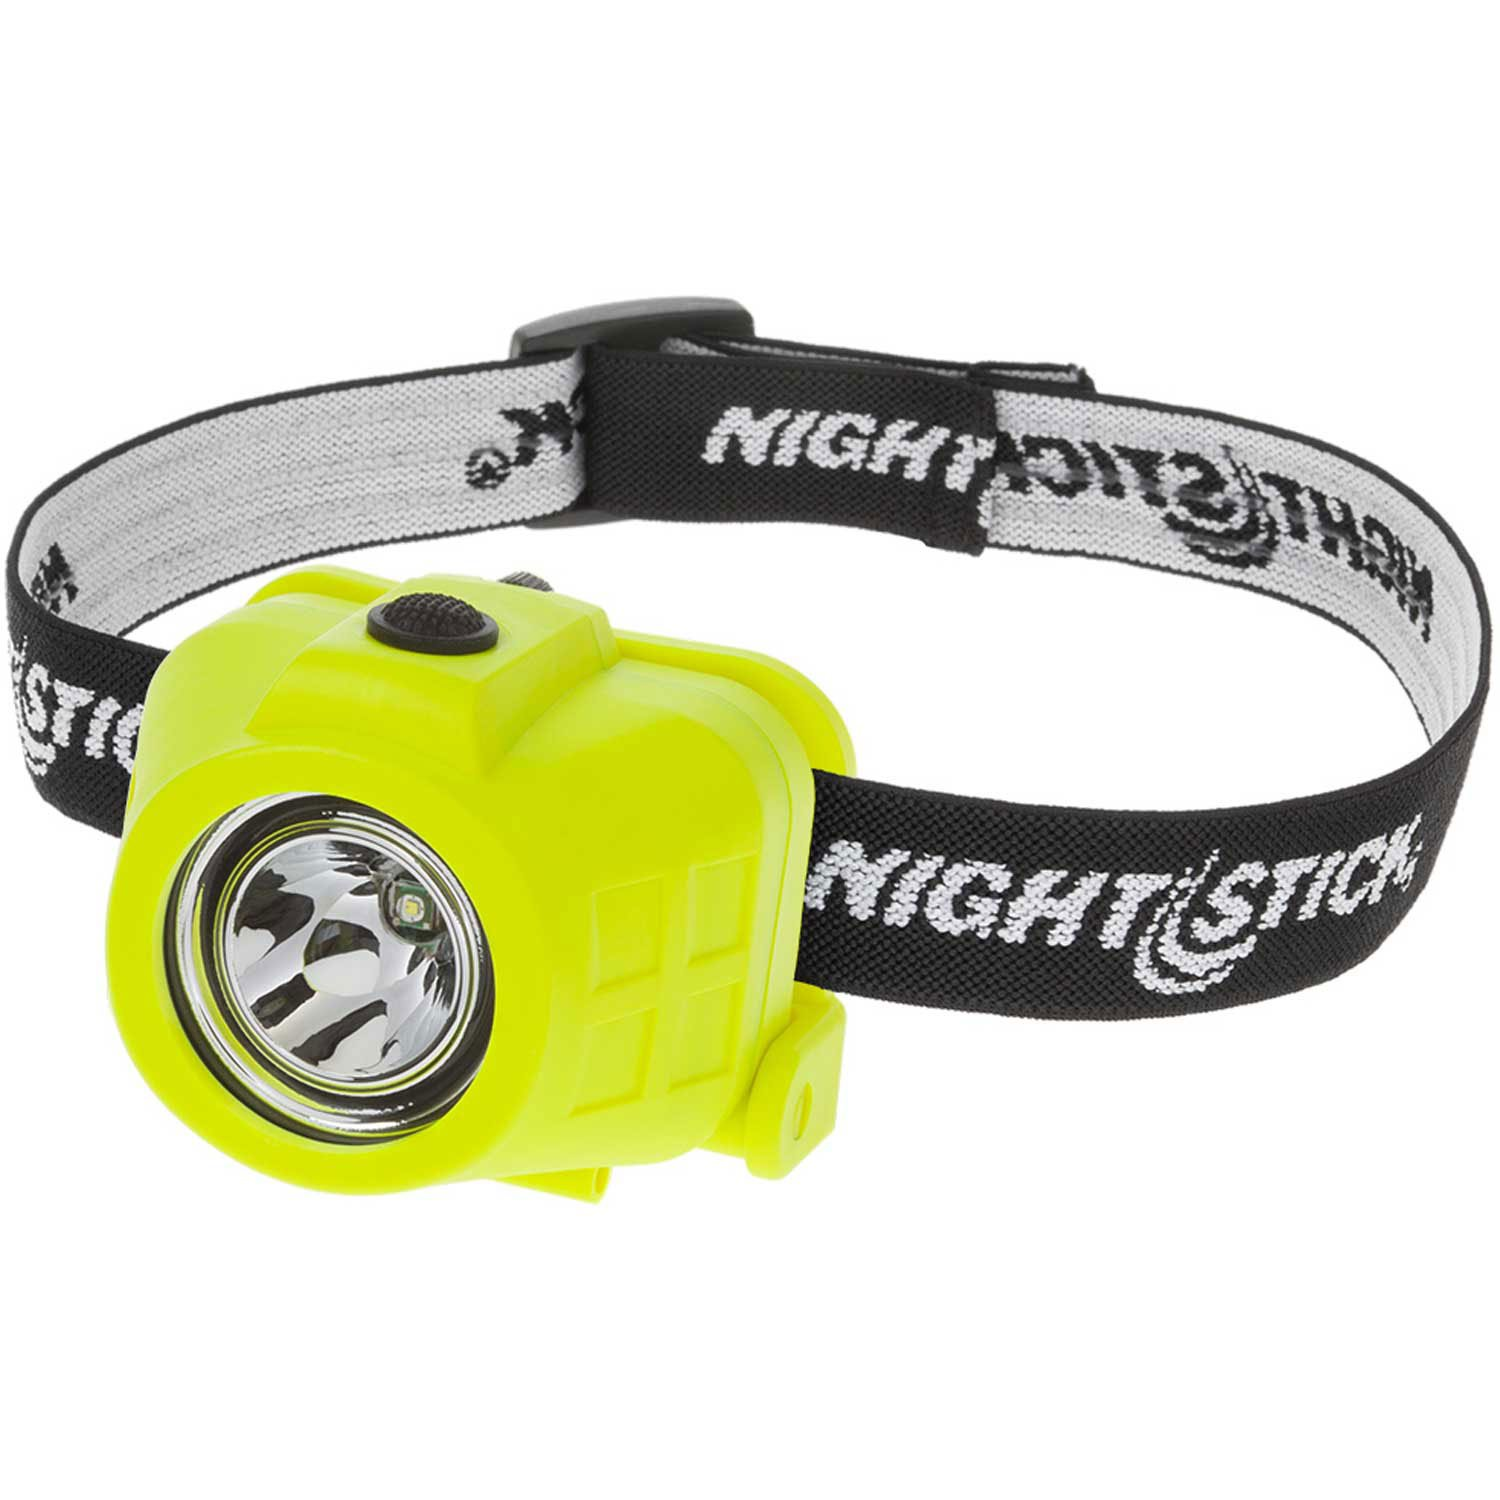 Safety Rated/Intrinsically Safe Headlamp - 60 Lumens - Lot of 4